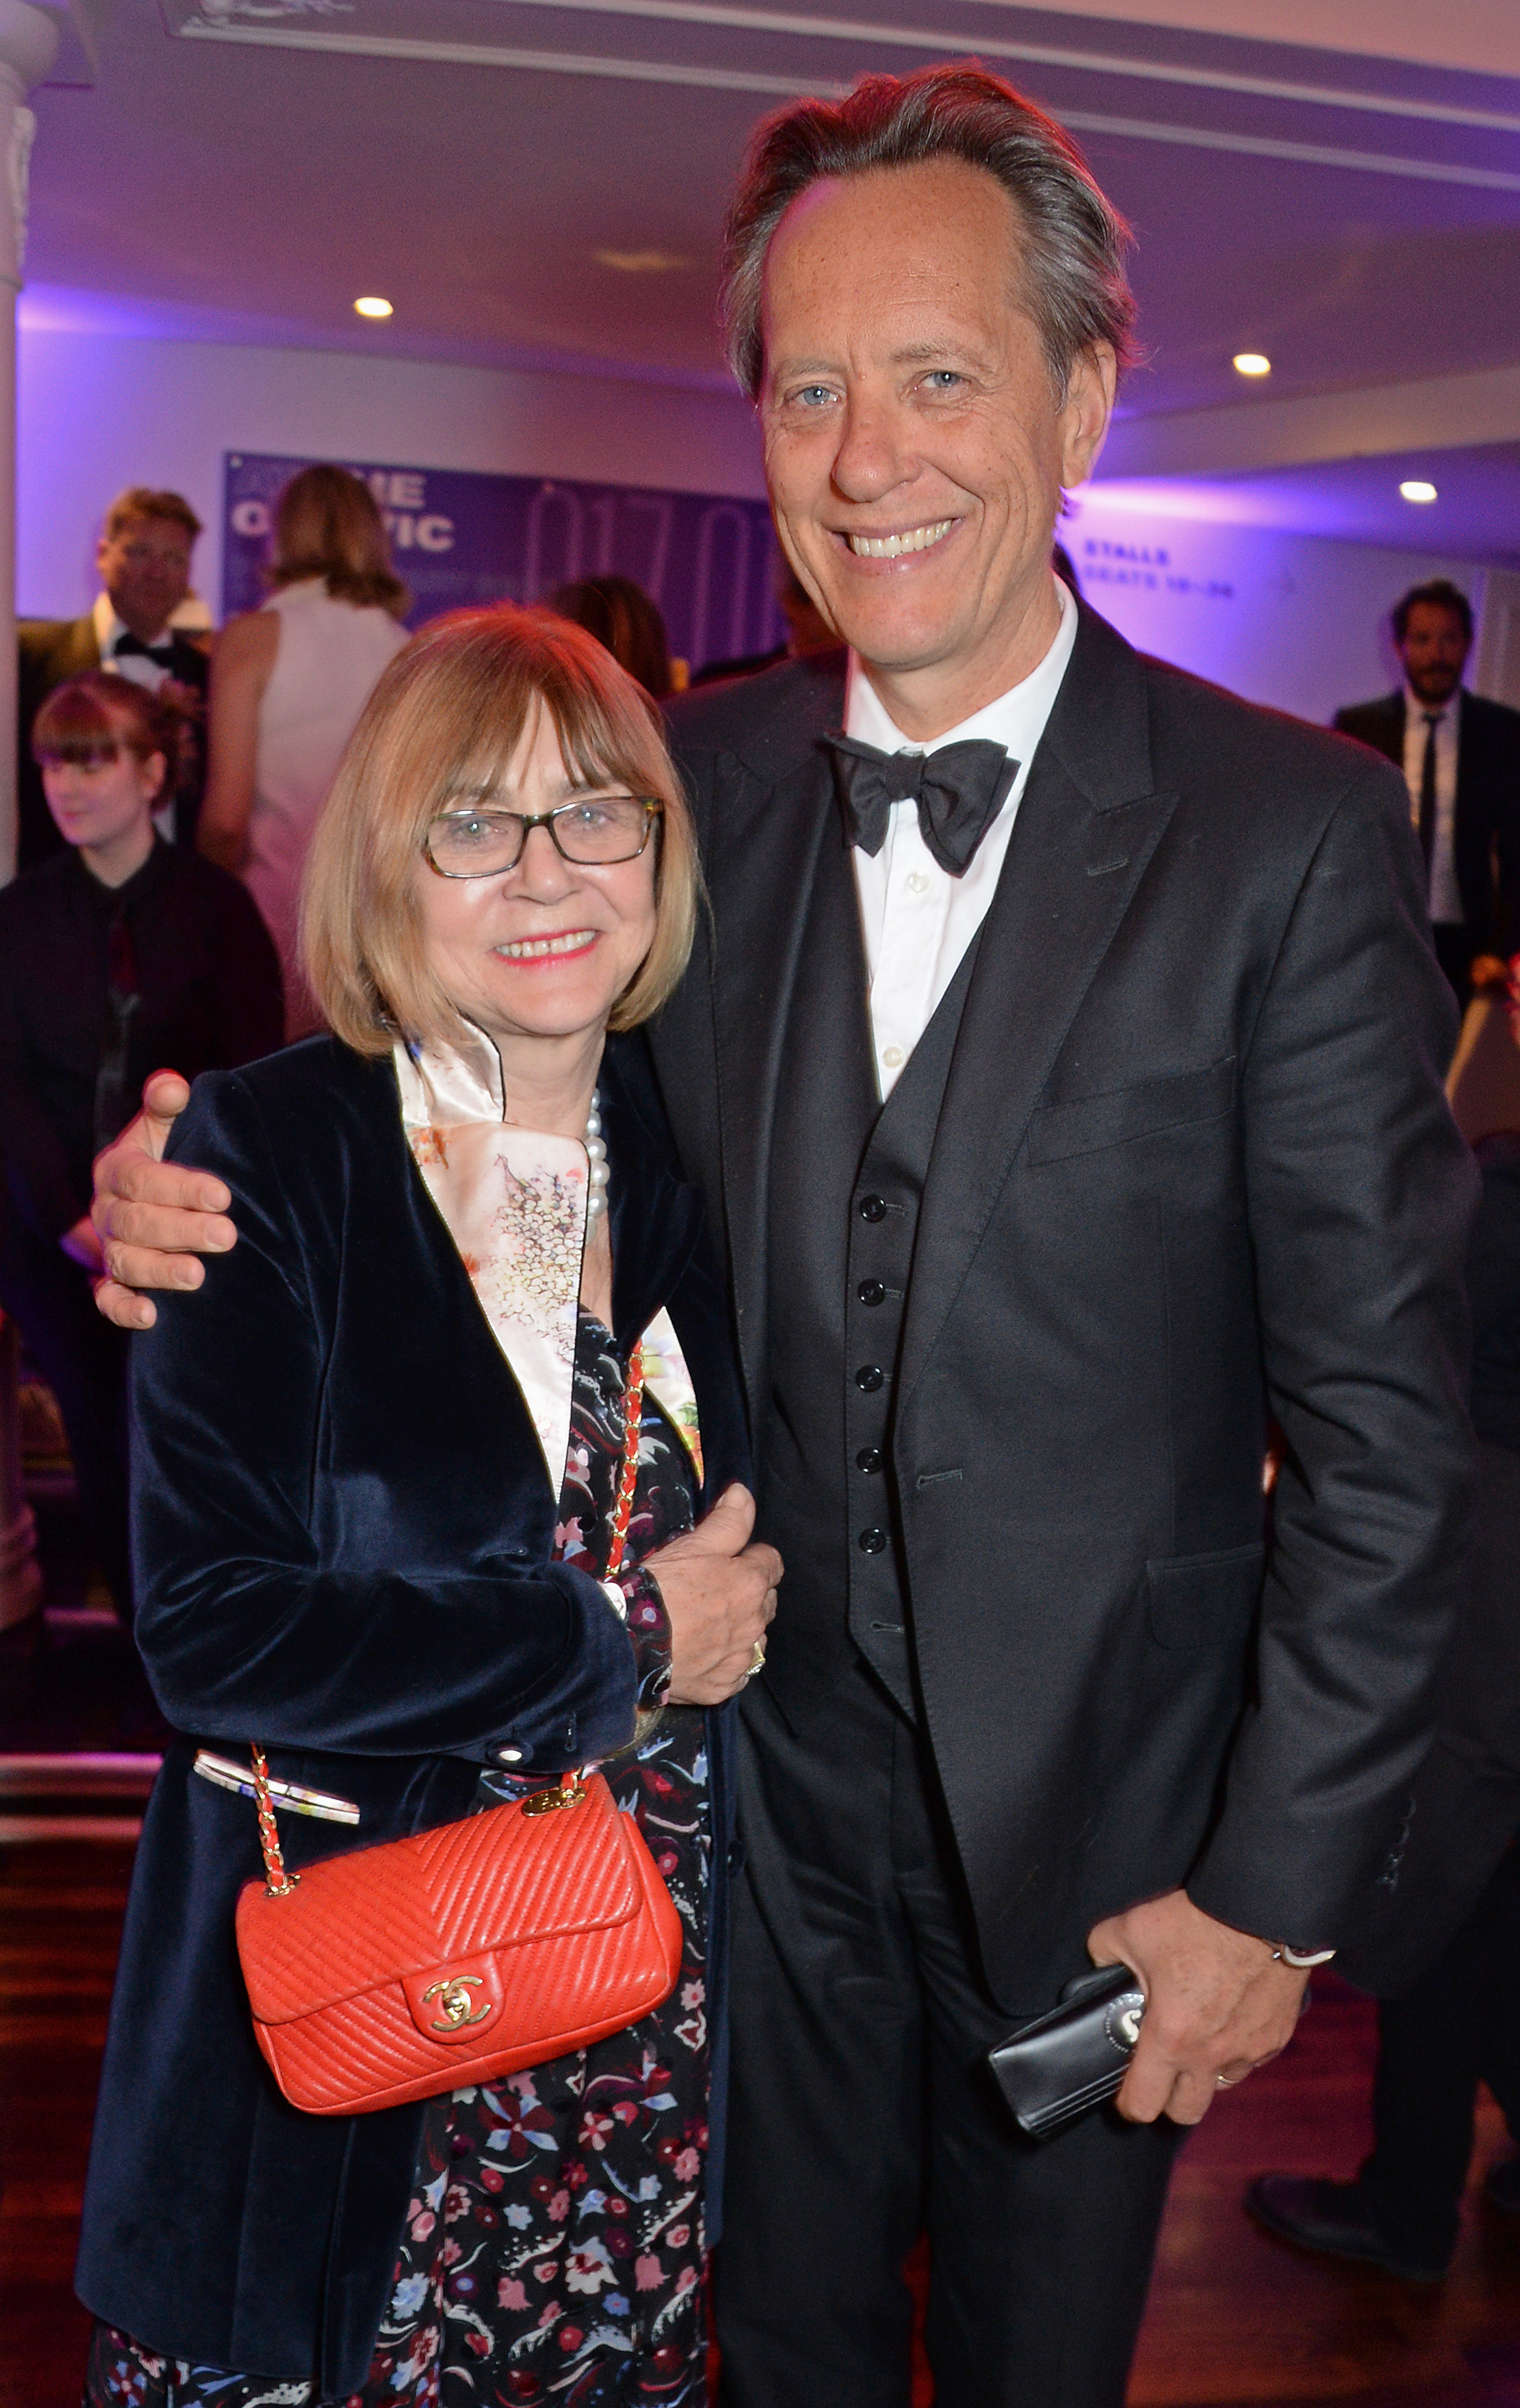 Richard E. Grant and  Joan Washington attend The Old Vic Bicentenary Ball to celebrate the theatre's 200th birthday at The Old Vic Theatre on May 13, 2018 in London, England.